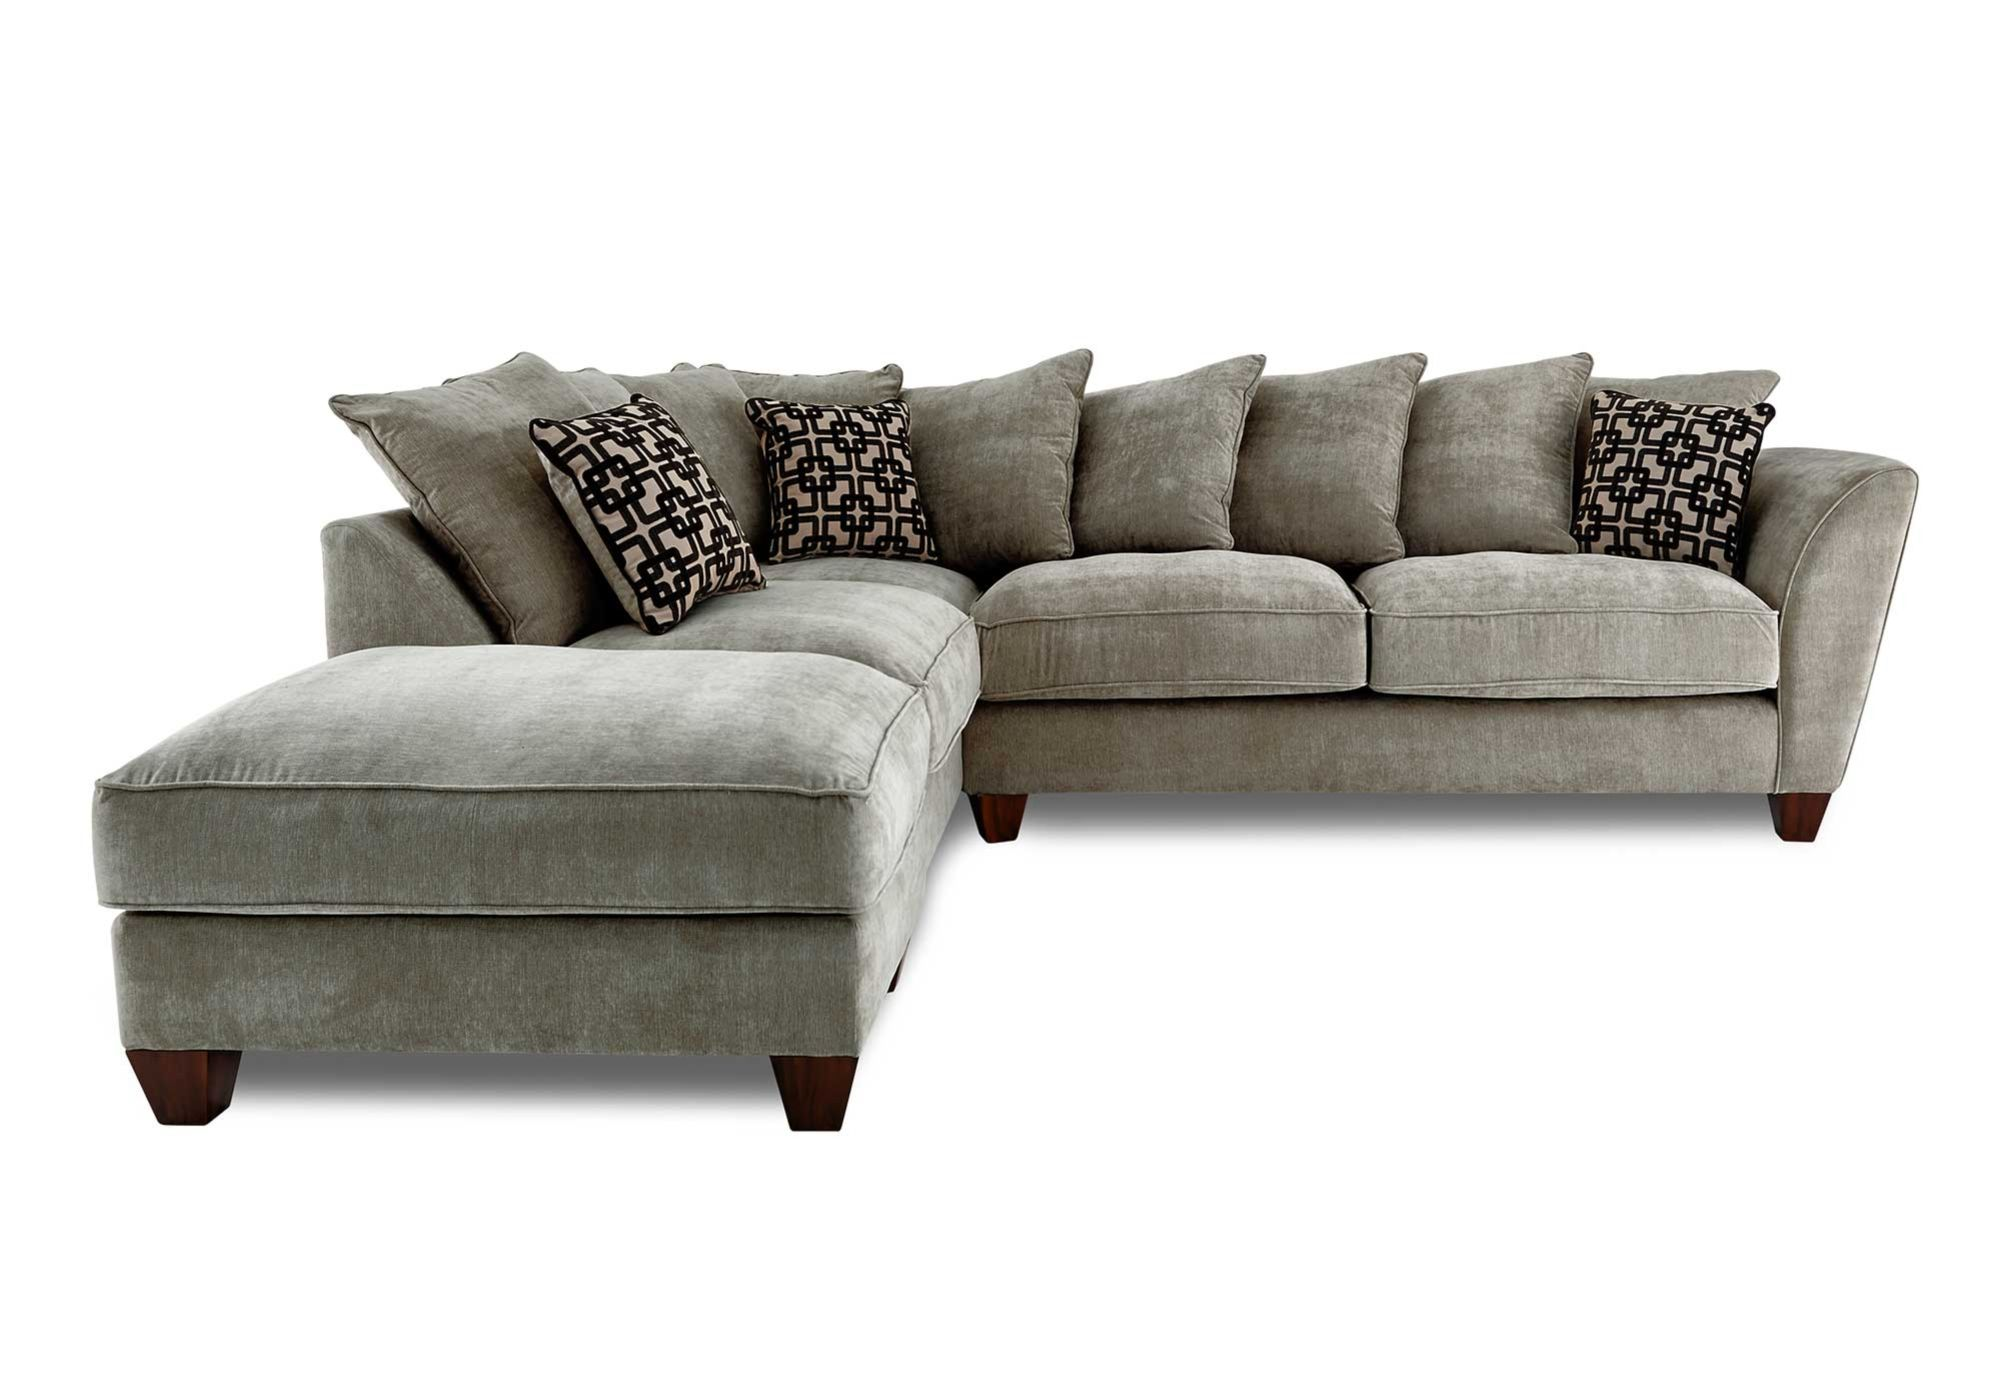 Furniture Village Hartford Sofa Lhf Scatter Back Corner Sofa Tangier Gorgeous Living Room